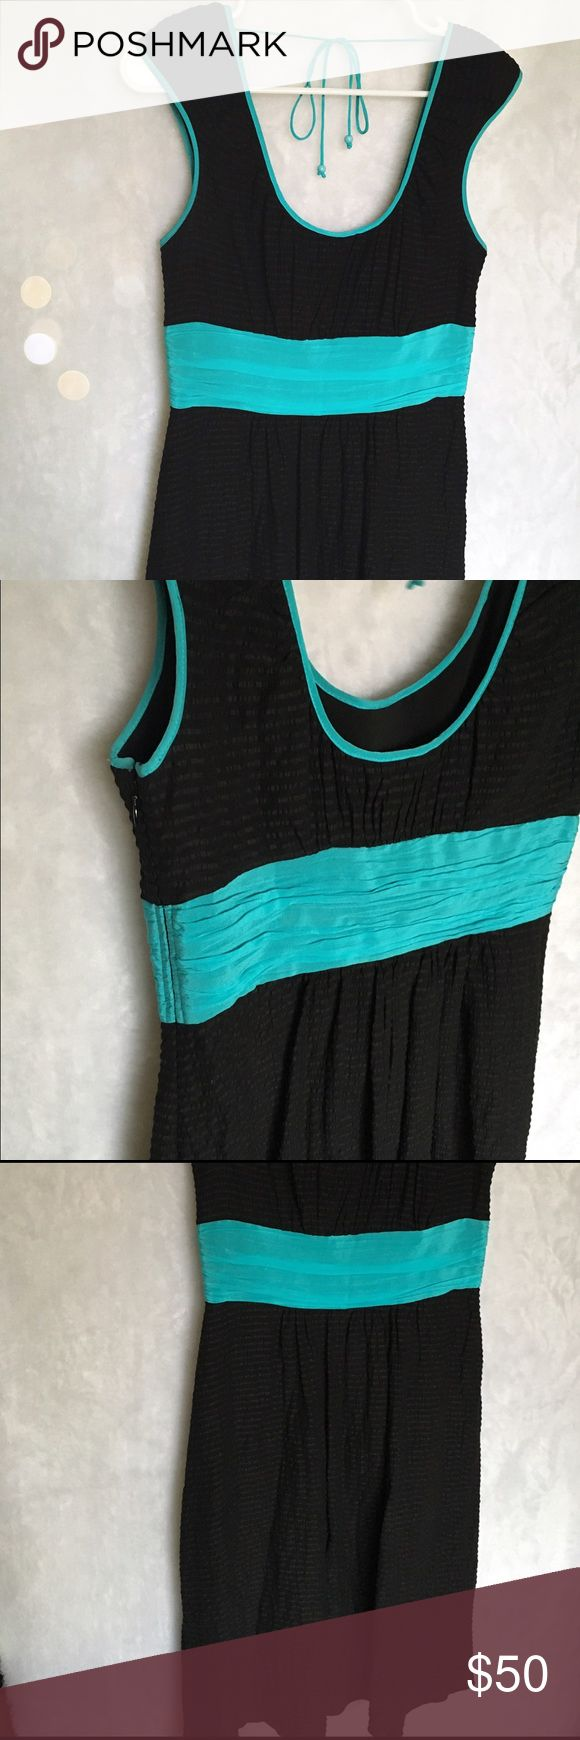 Tracy Reese dress Frock! By Tracy Reese Black and turquoise dress. Silk/linen/spandex. Subtle black stripes throughout the dress. Zipper on the side. So cute! Tracy Reese Dresses